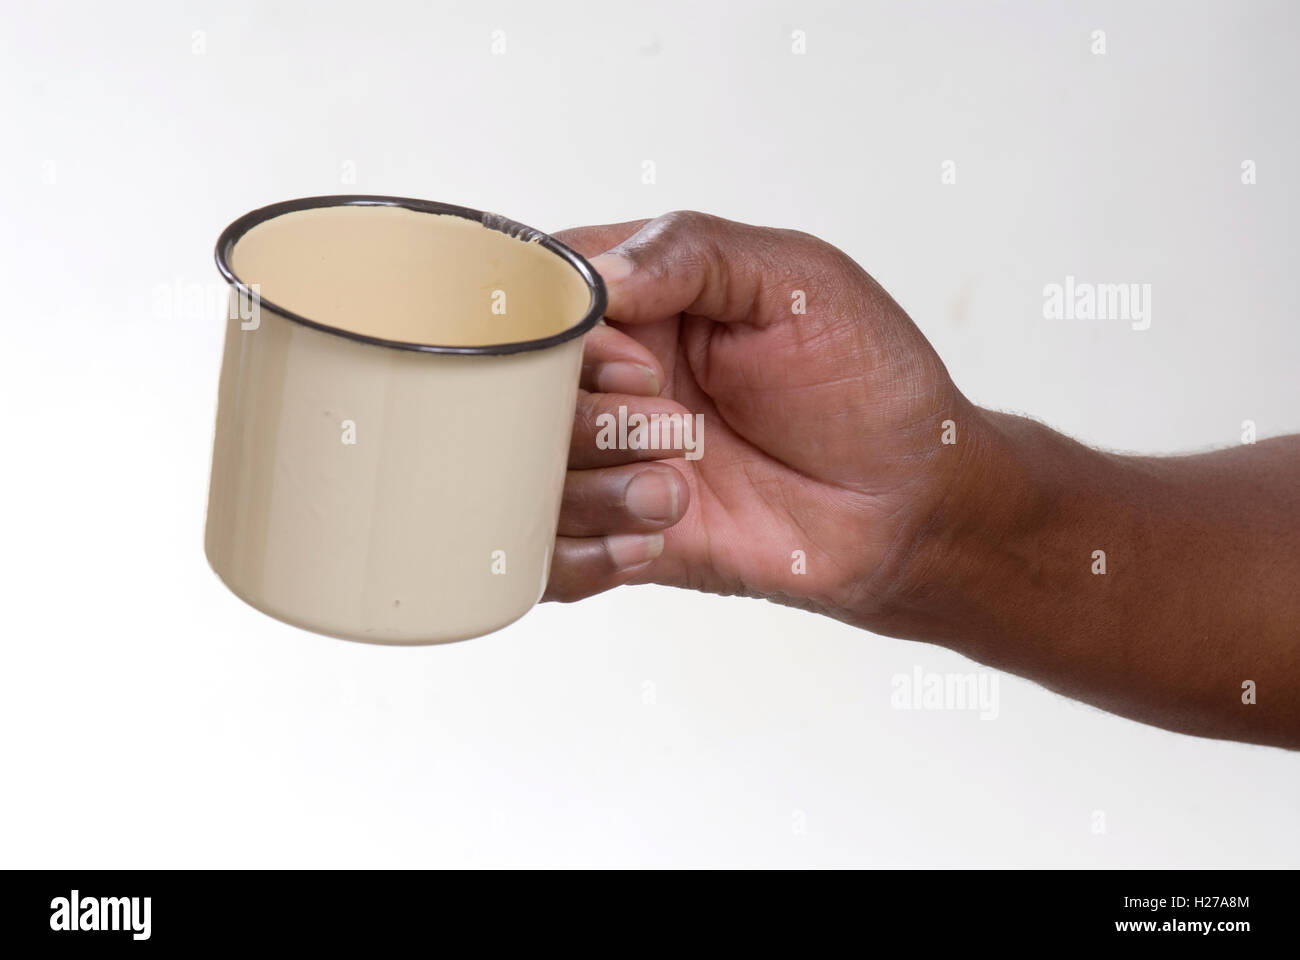 African's hand holding an empty enameled tin mug, could be begging or asking for drink or food - Stock Image